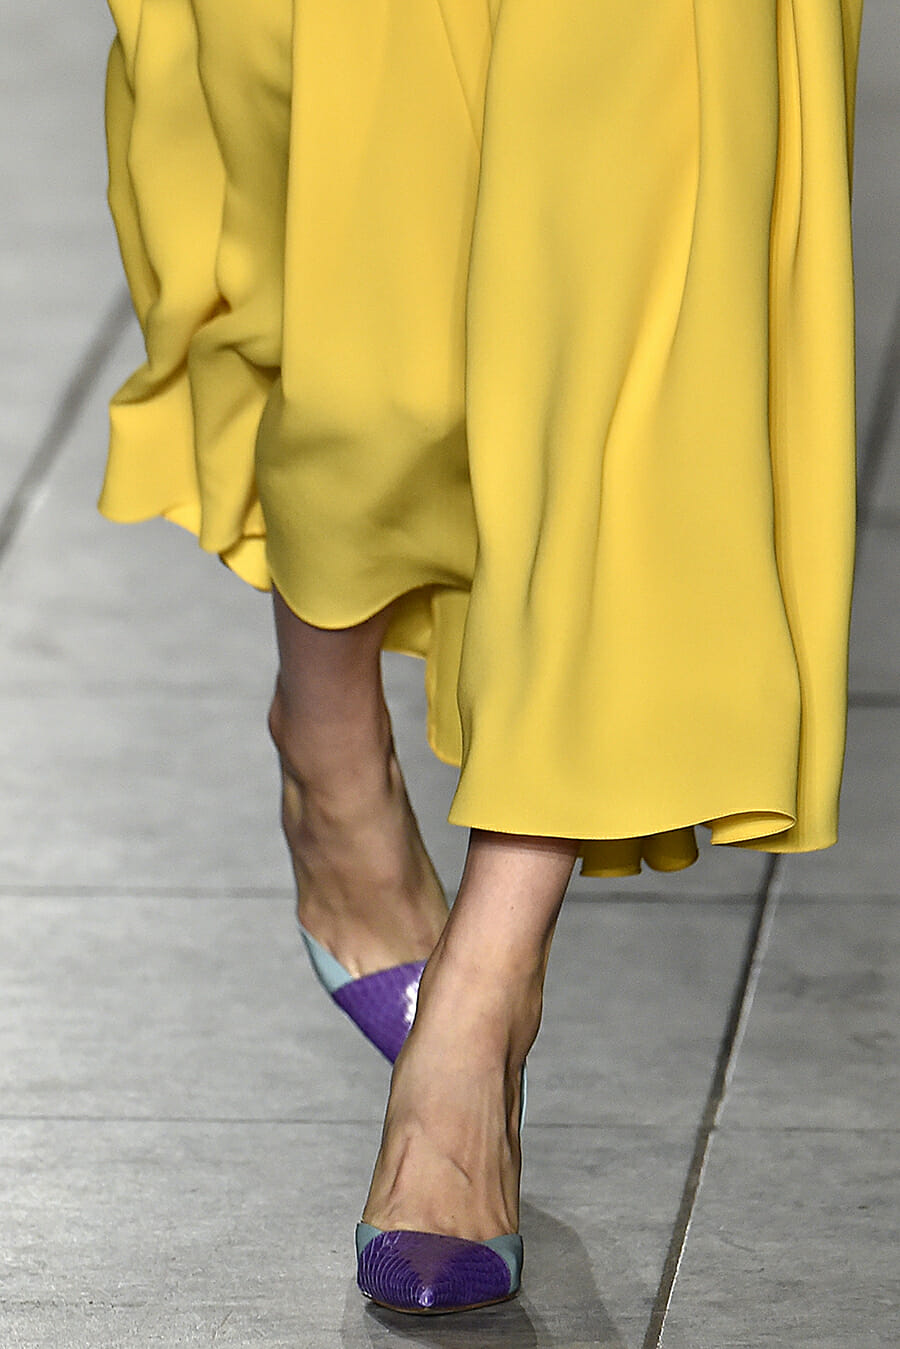 Carolina-Herrera-New-York-Fashion-Week-Spring-Summer-2018-NY-September-2017-look14-detail3